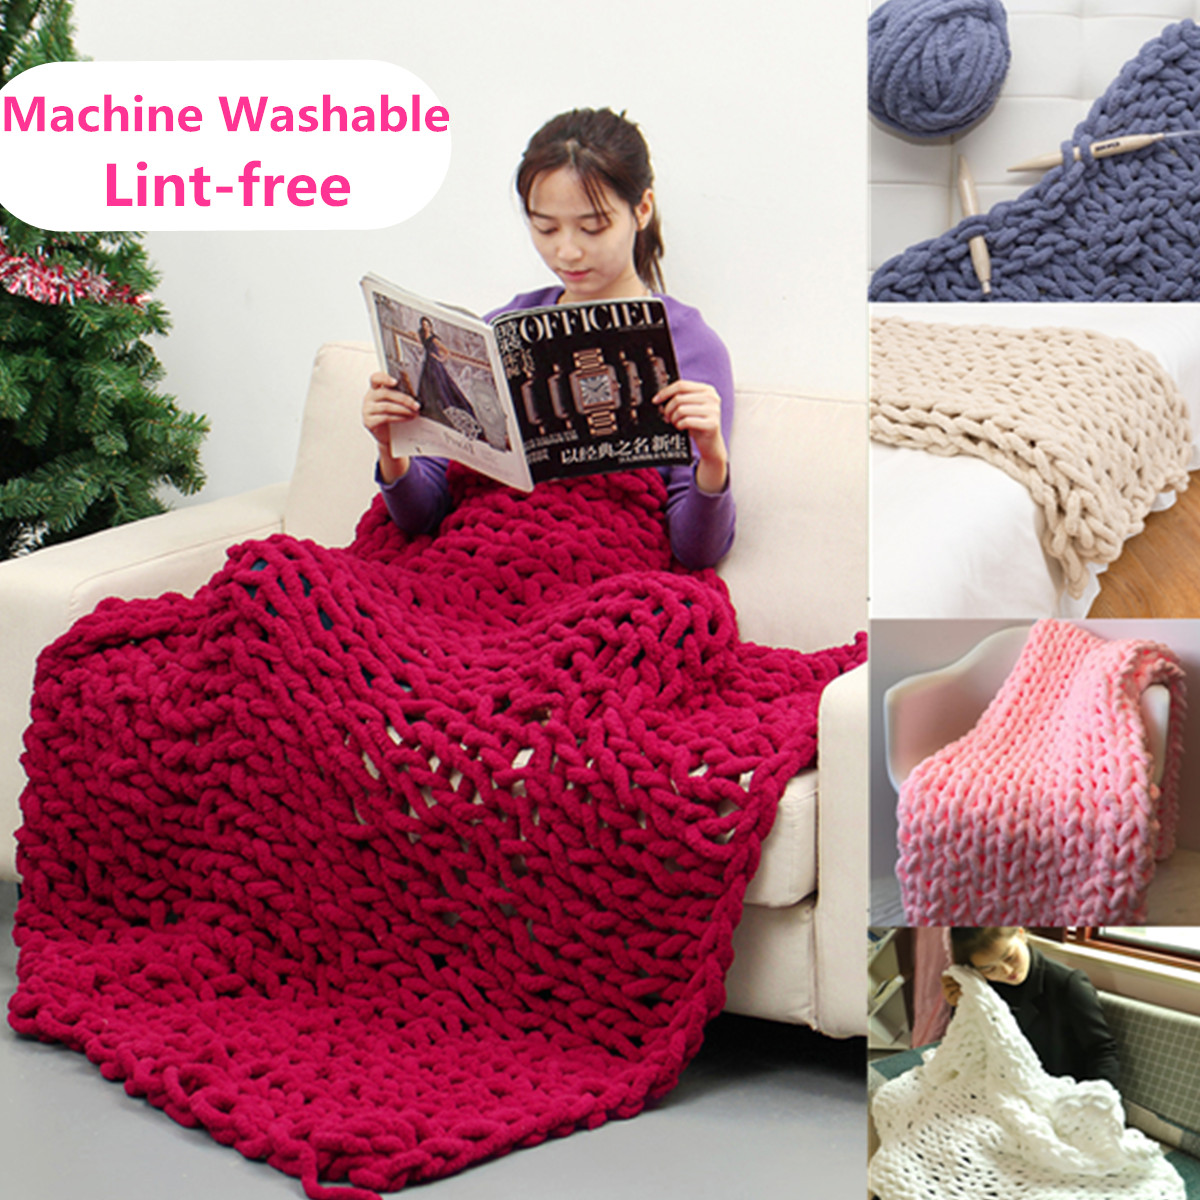 5 Sizes Washable Hand-woven Bulky Warm Soft Chunky Knit Bedding Blanket Lint-free Thick Yarn Knitted Sofa Throw Rug